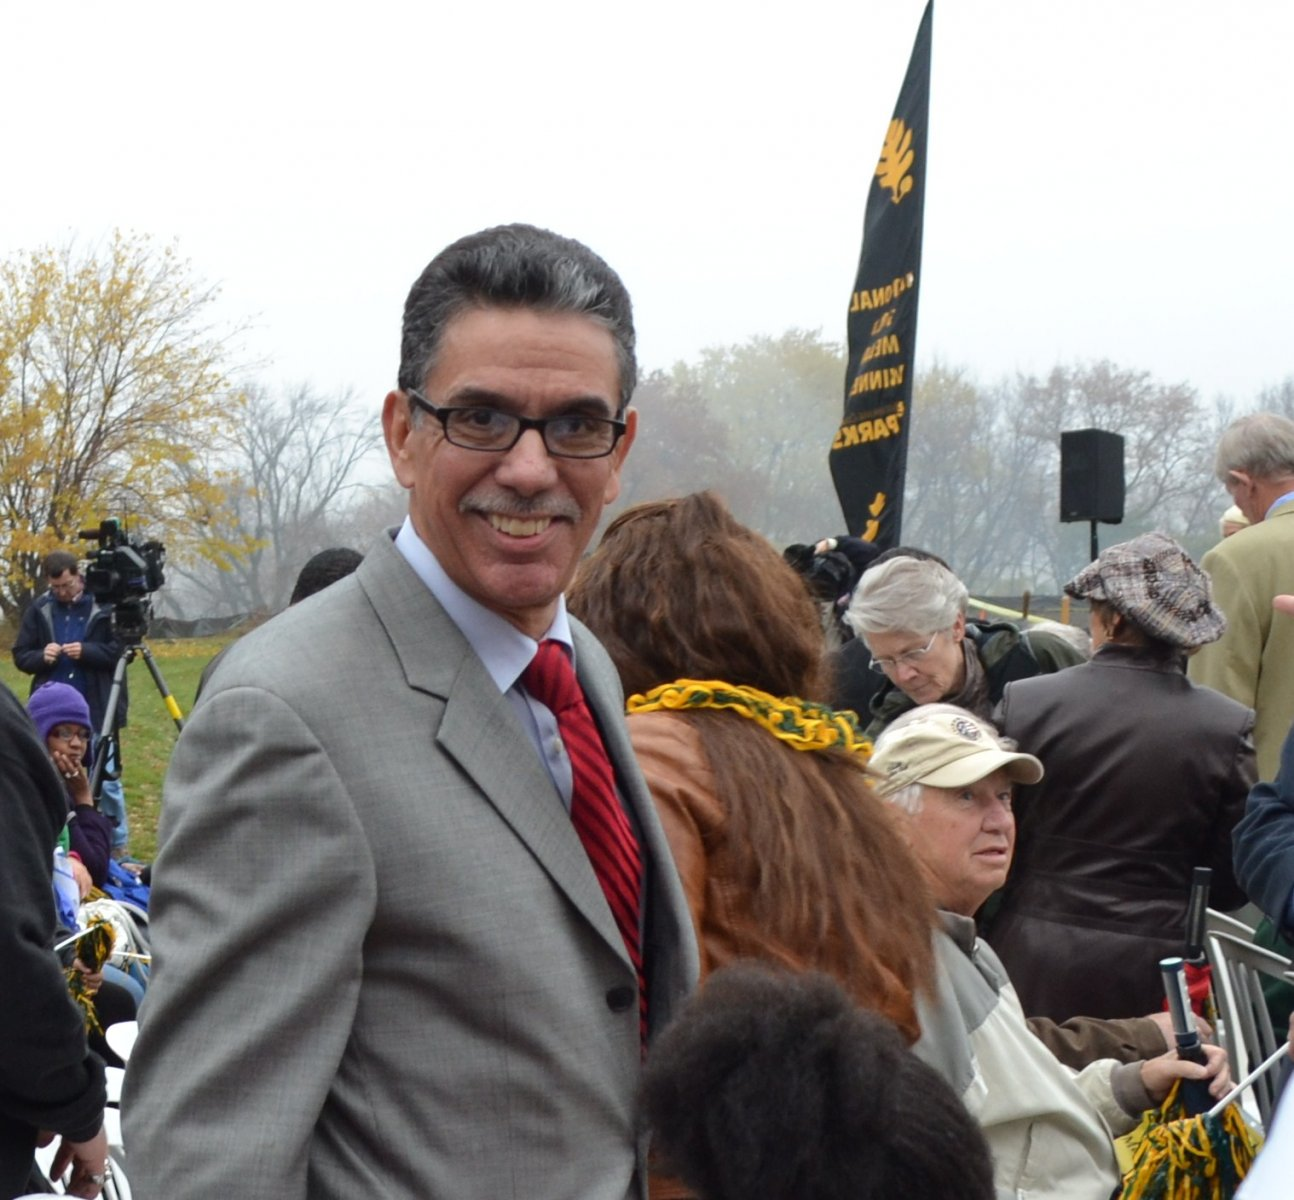 President of the United Community Center, Ricardo Diaz, represented the Packer organization as one of the newest Packer Board of Directors